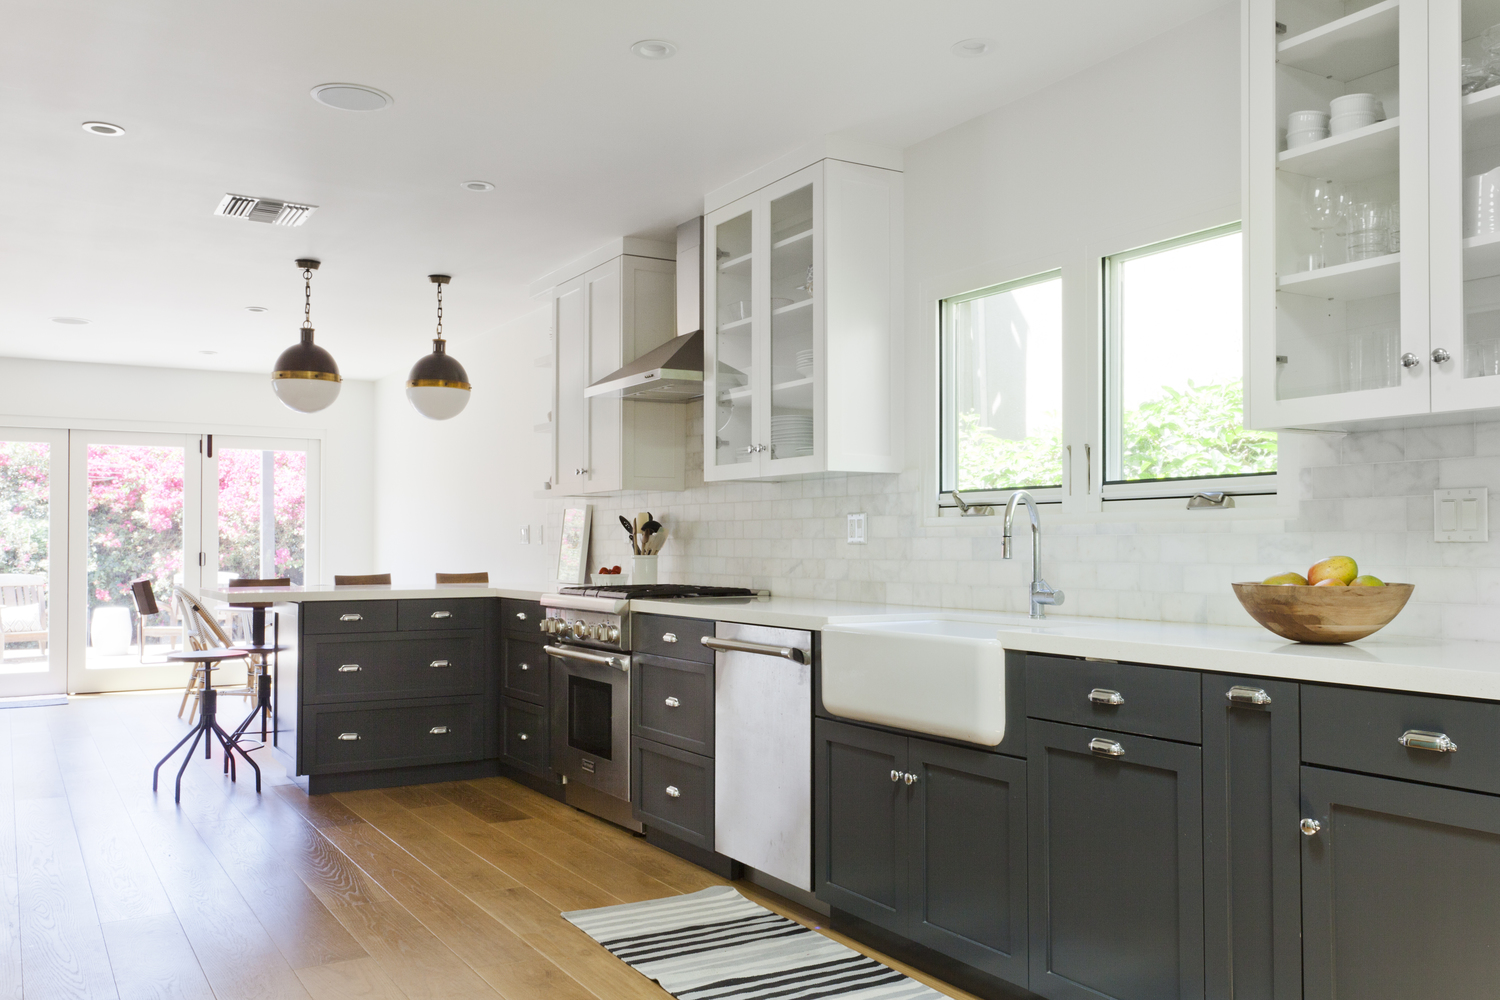 AFTER - the floors and kitchen of my client's (and my) dreams. - photo by  Heather Culp